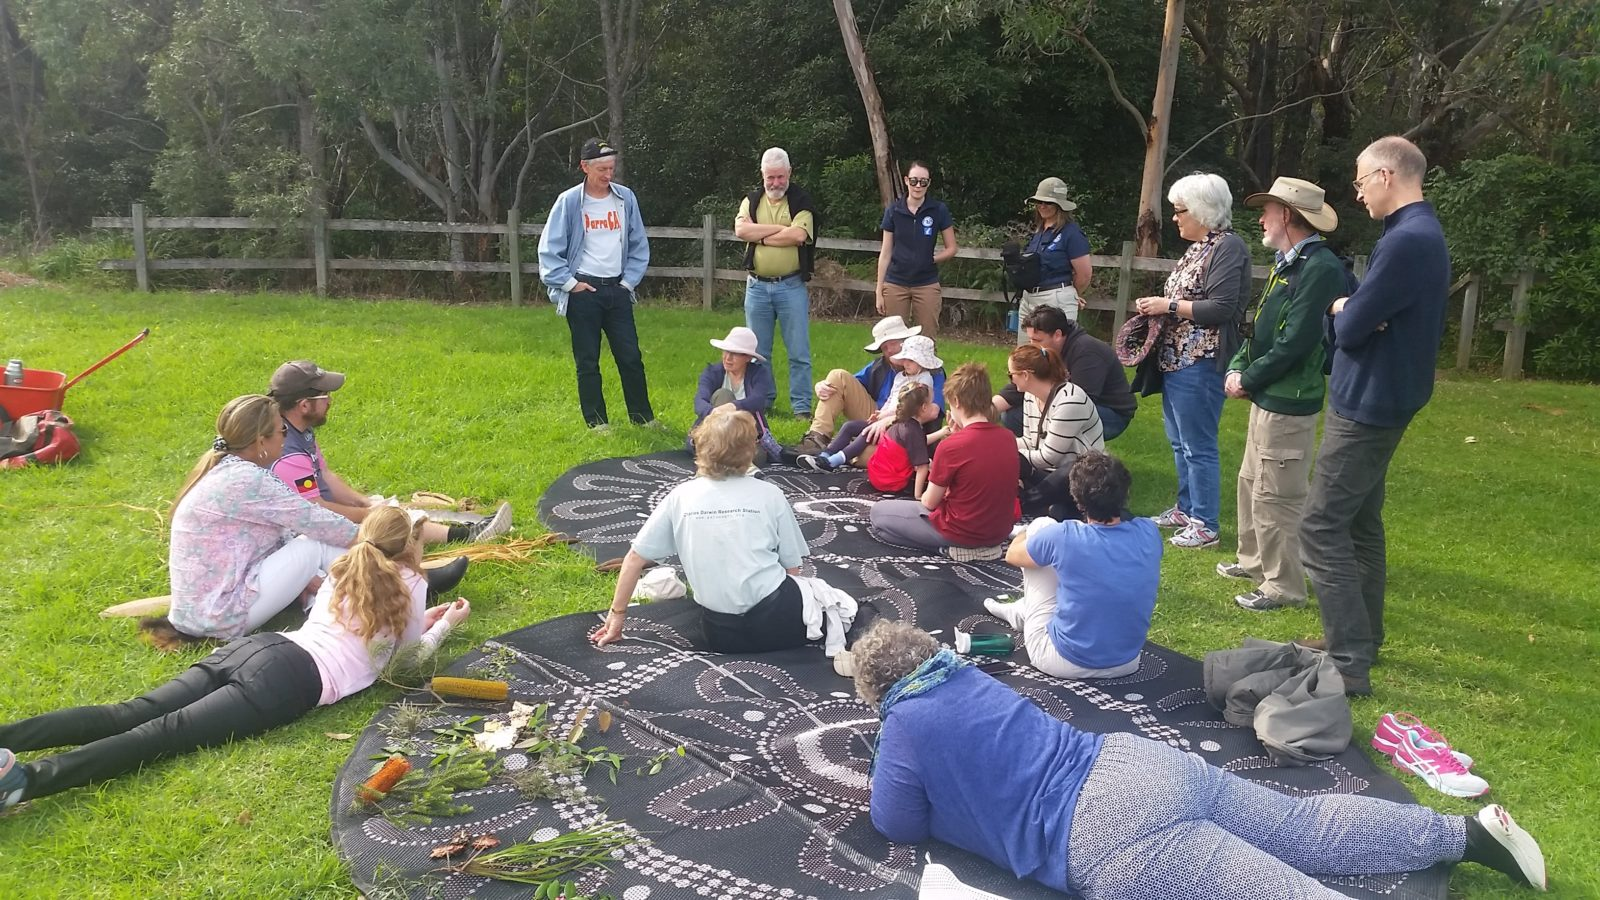 A guided tour along the river which teaches interesting facts about Aboriginal culture